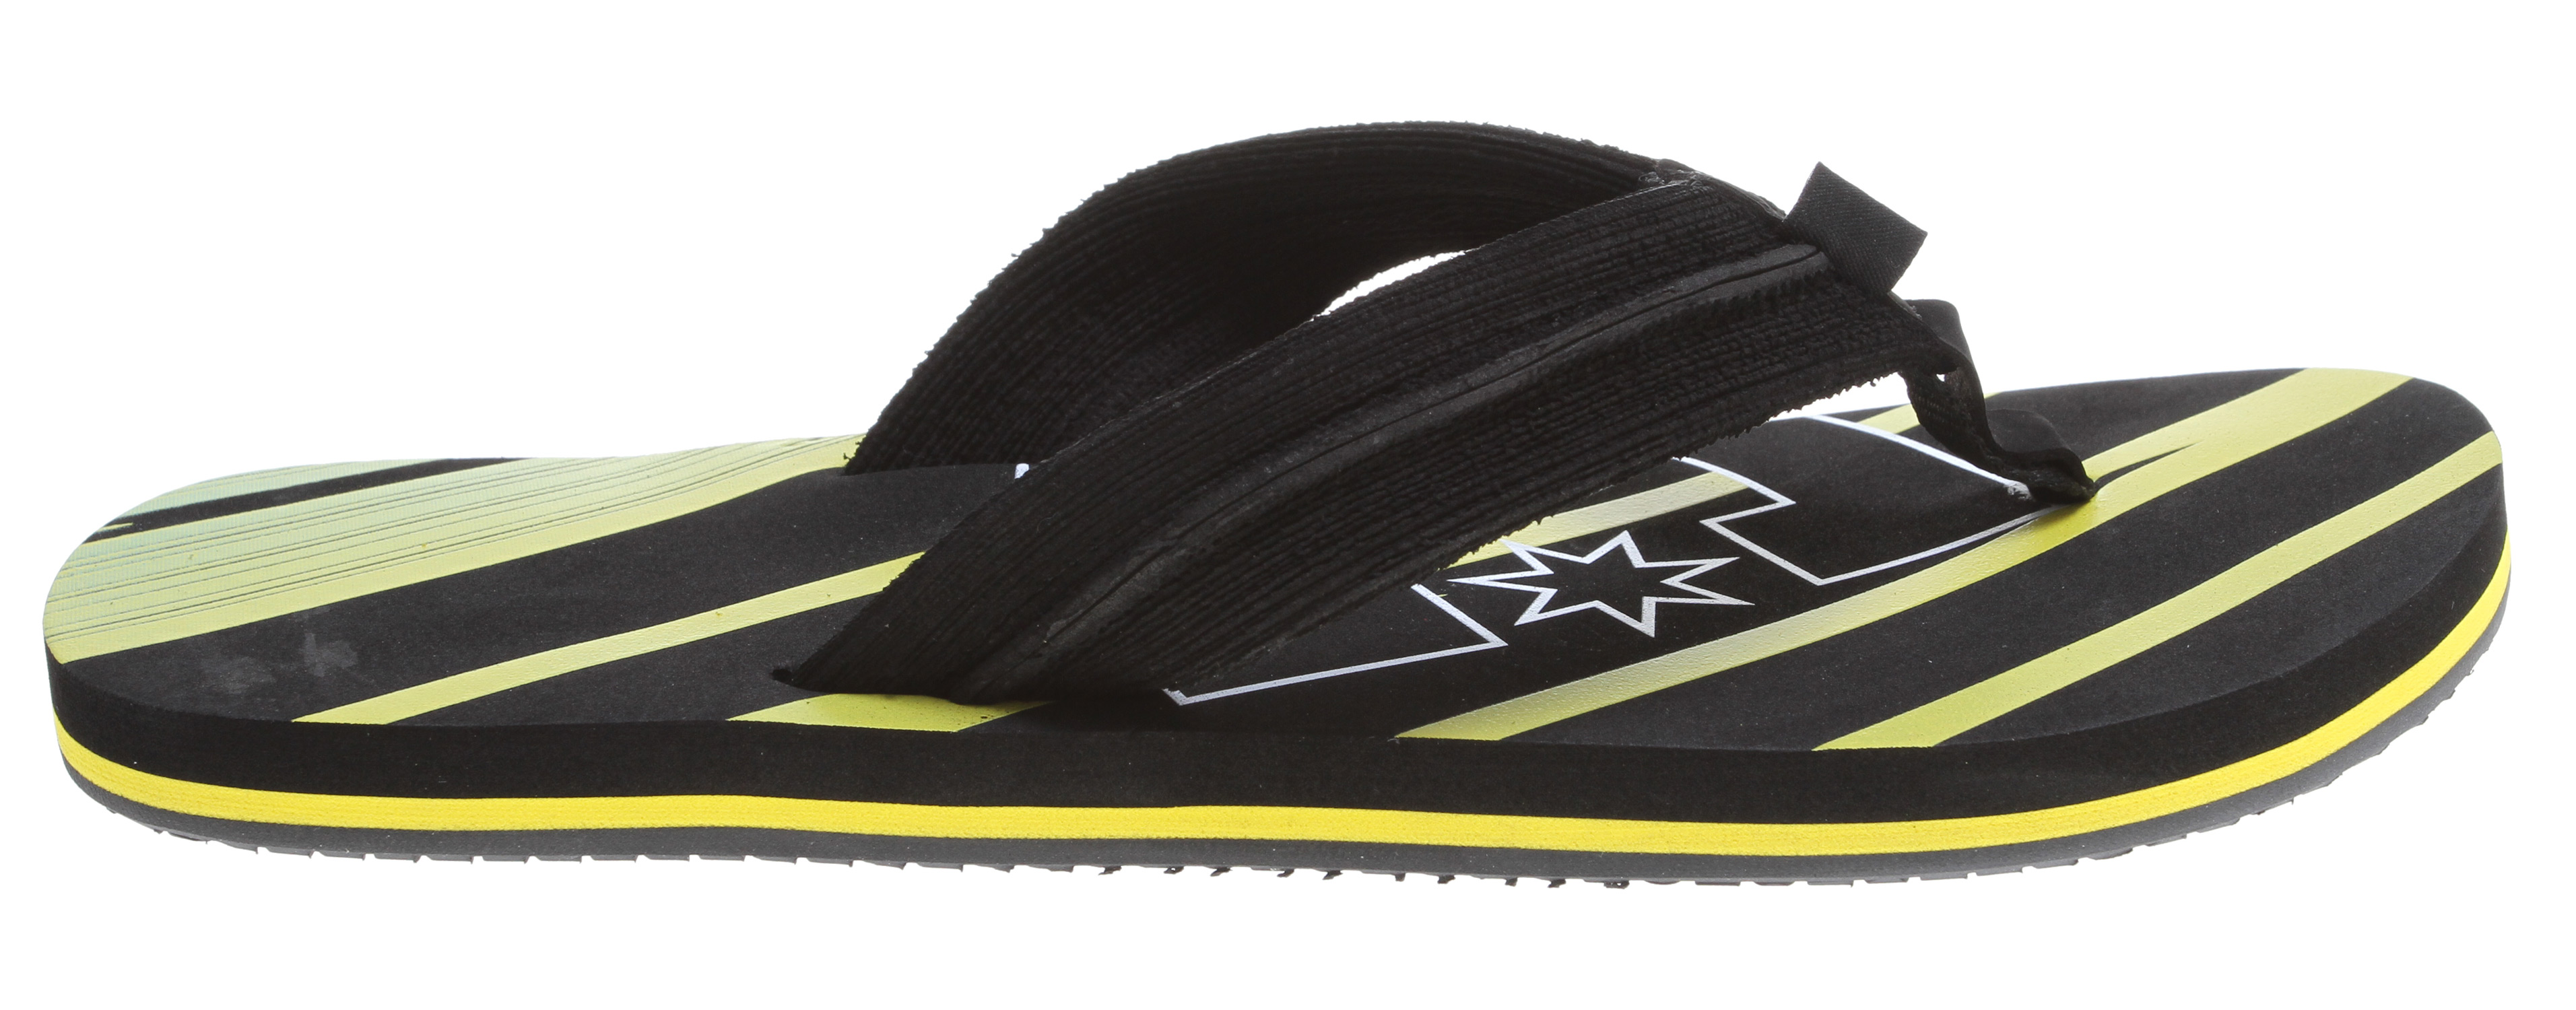 "Surf Key Features of the DC Central Graffik Sandals: Bold Graphics Brushed EVA Upper Spongy EVA Footbed With Large Graphic DC Logo Compensation Layer For Added Comfort DC's Trademarked ""Pill Pattern"" Rubber Outsole. - $15.95"